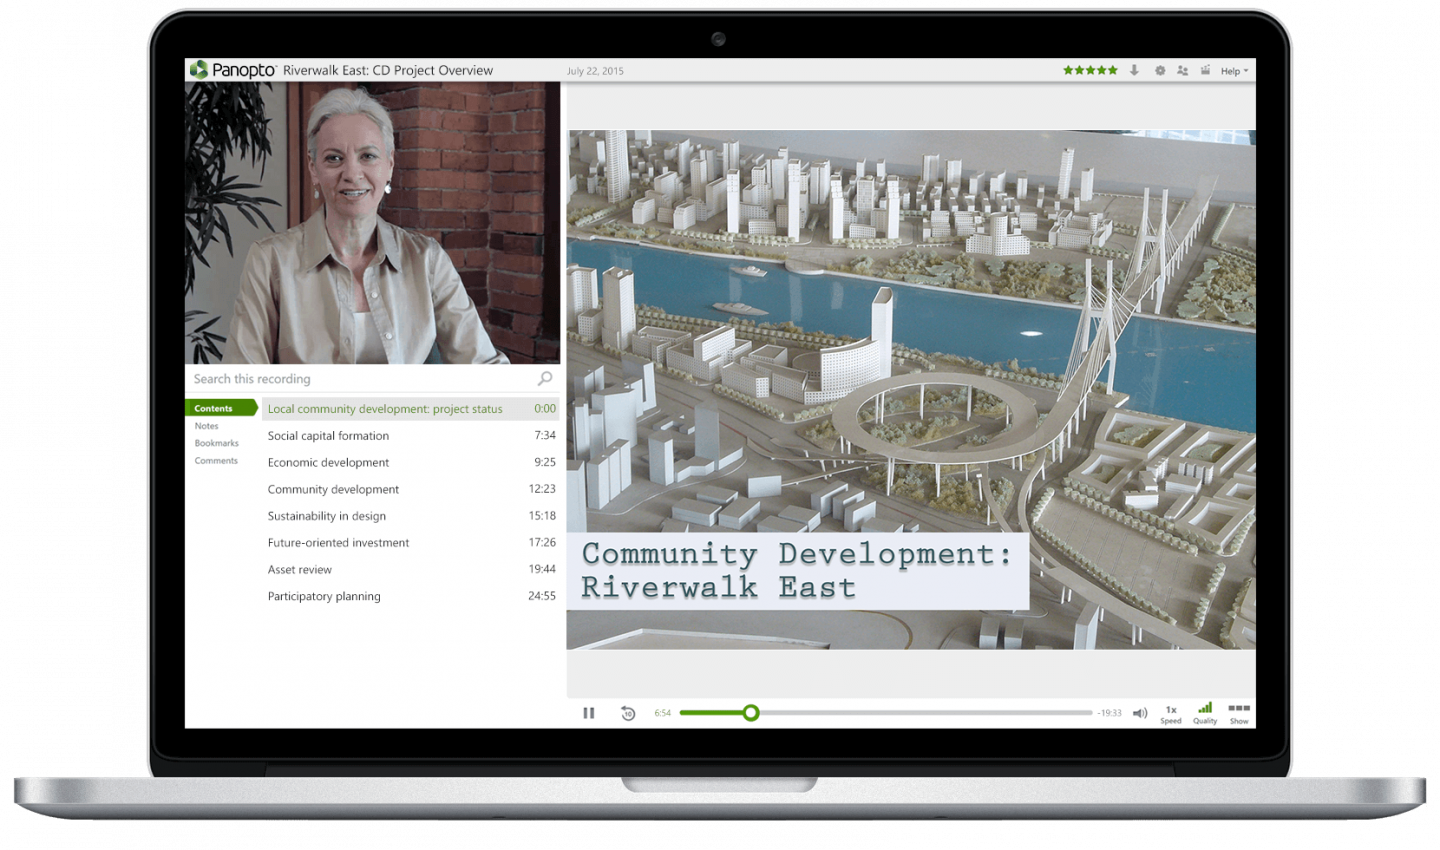 Record live on-demand videos that support university development with Panopto's video platform for education